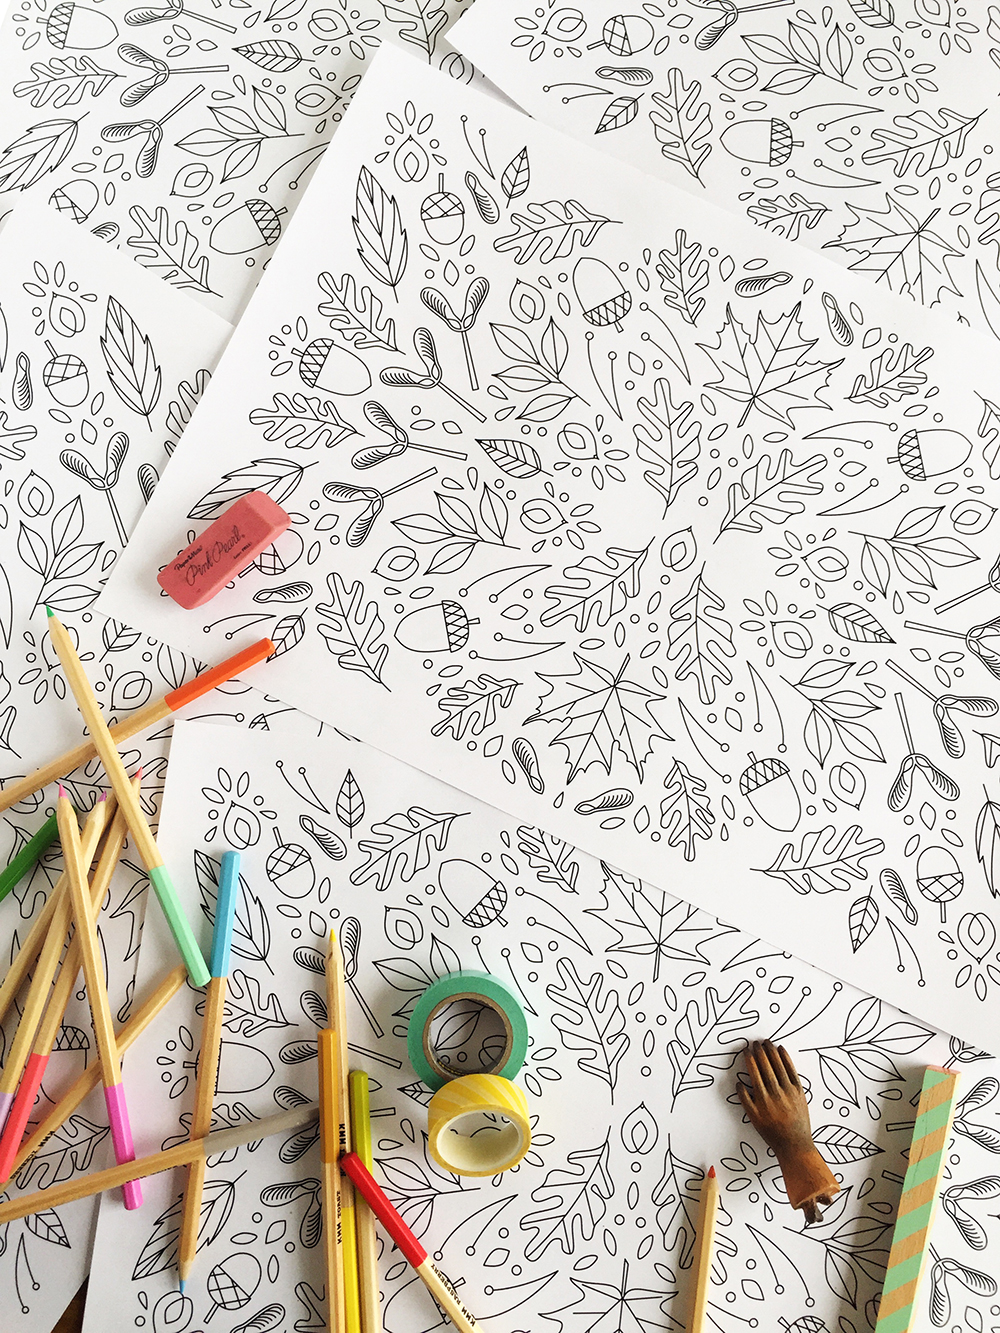 picture relating to Free Printable Thanksgiving Placemats known as Printable Coloring Thanksgiving Placemats - The Room That